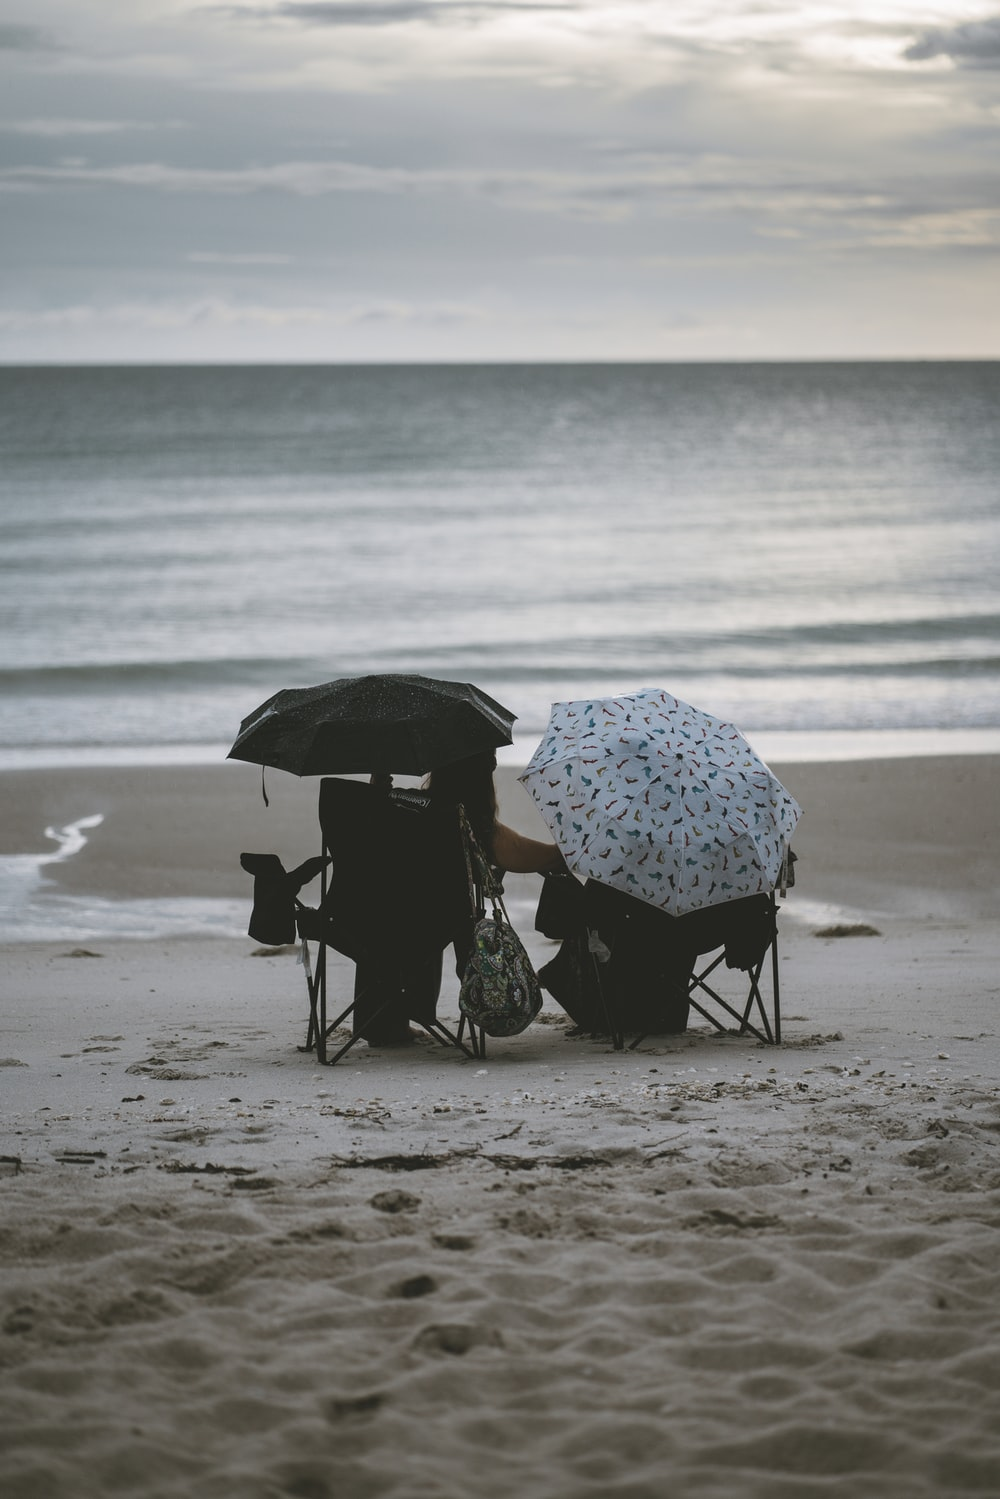 person holding umbrella walking on beach during daytime